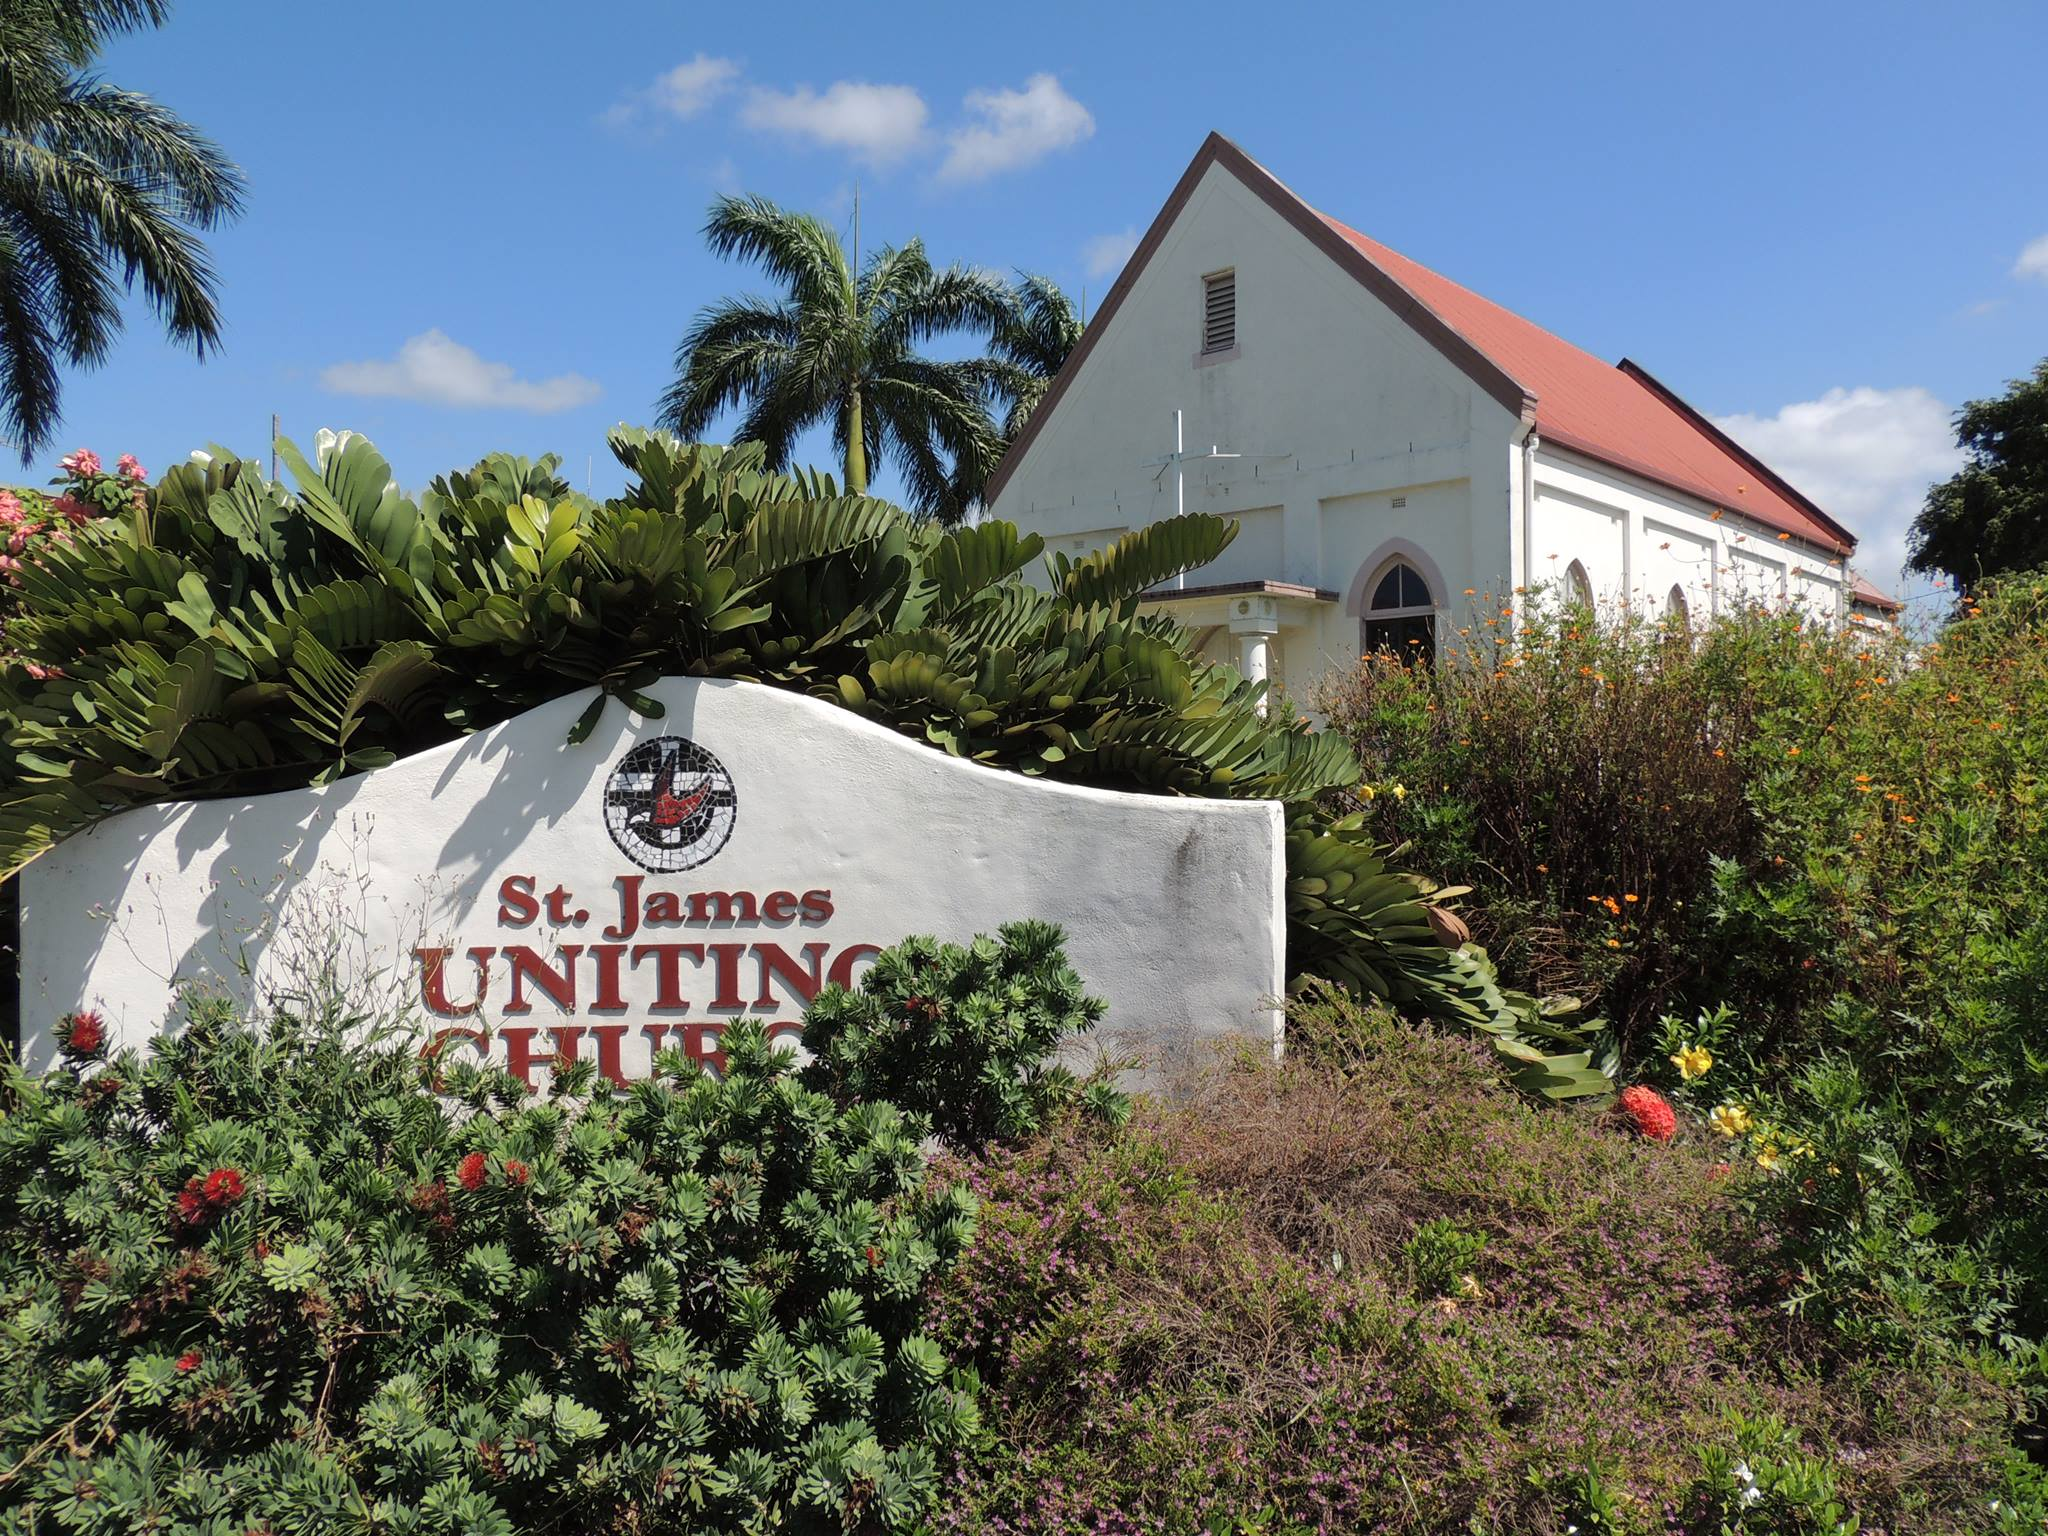 St James Uniting Church with street sign